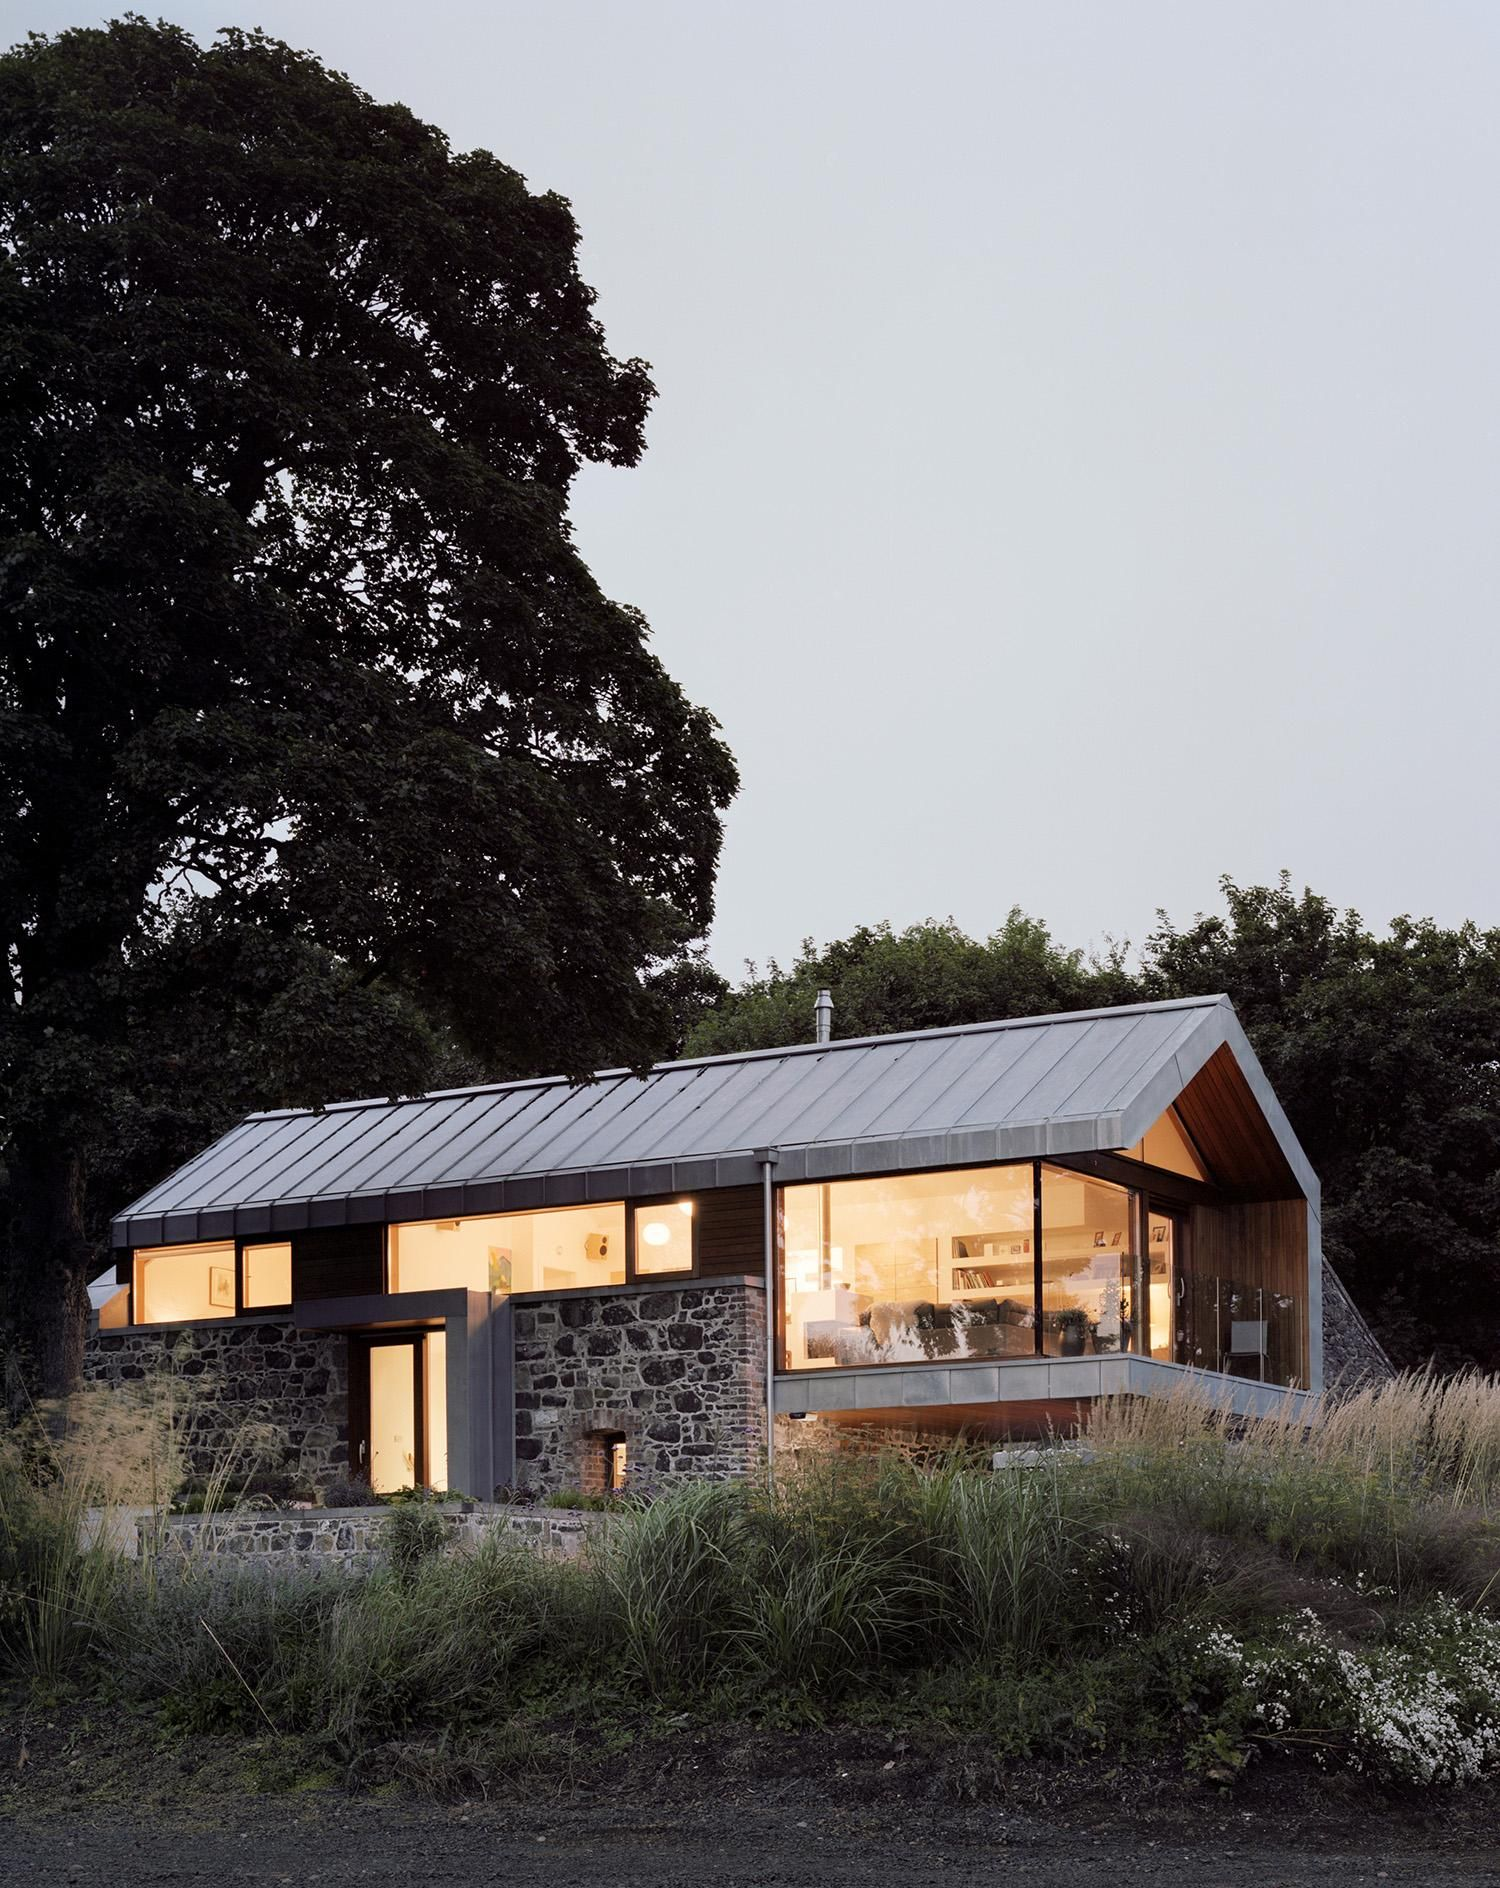 McGarry Moon Updates A Traditional Stone Barn With Steel Framed Living Space